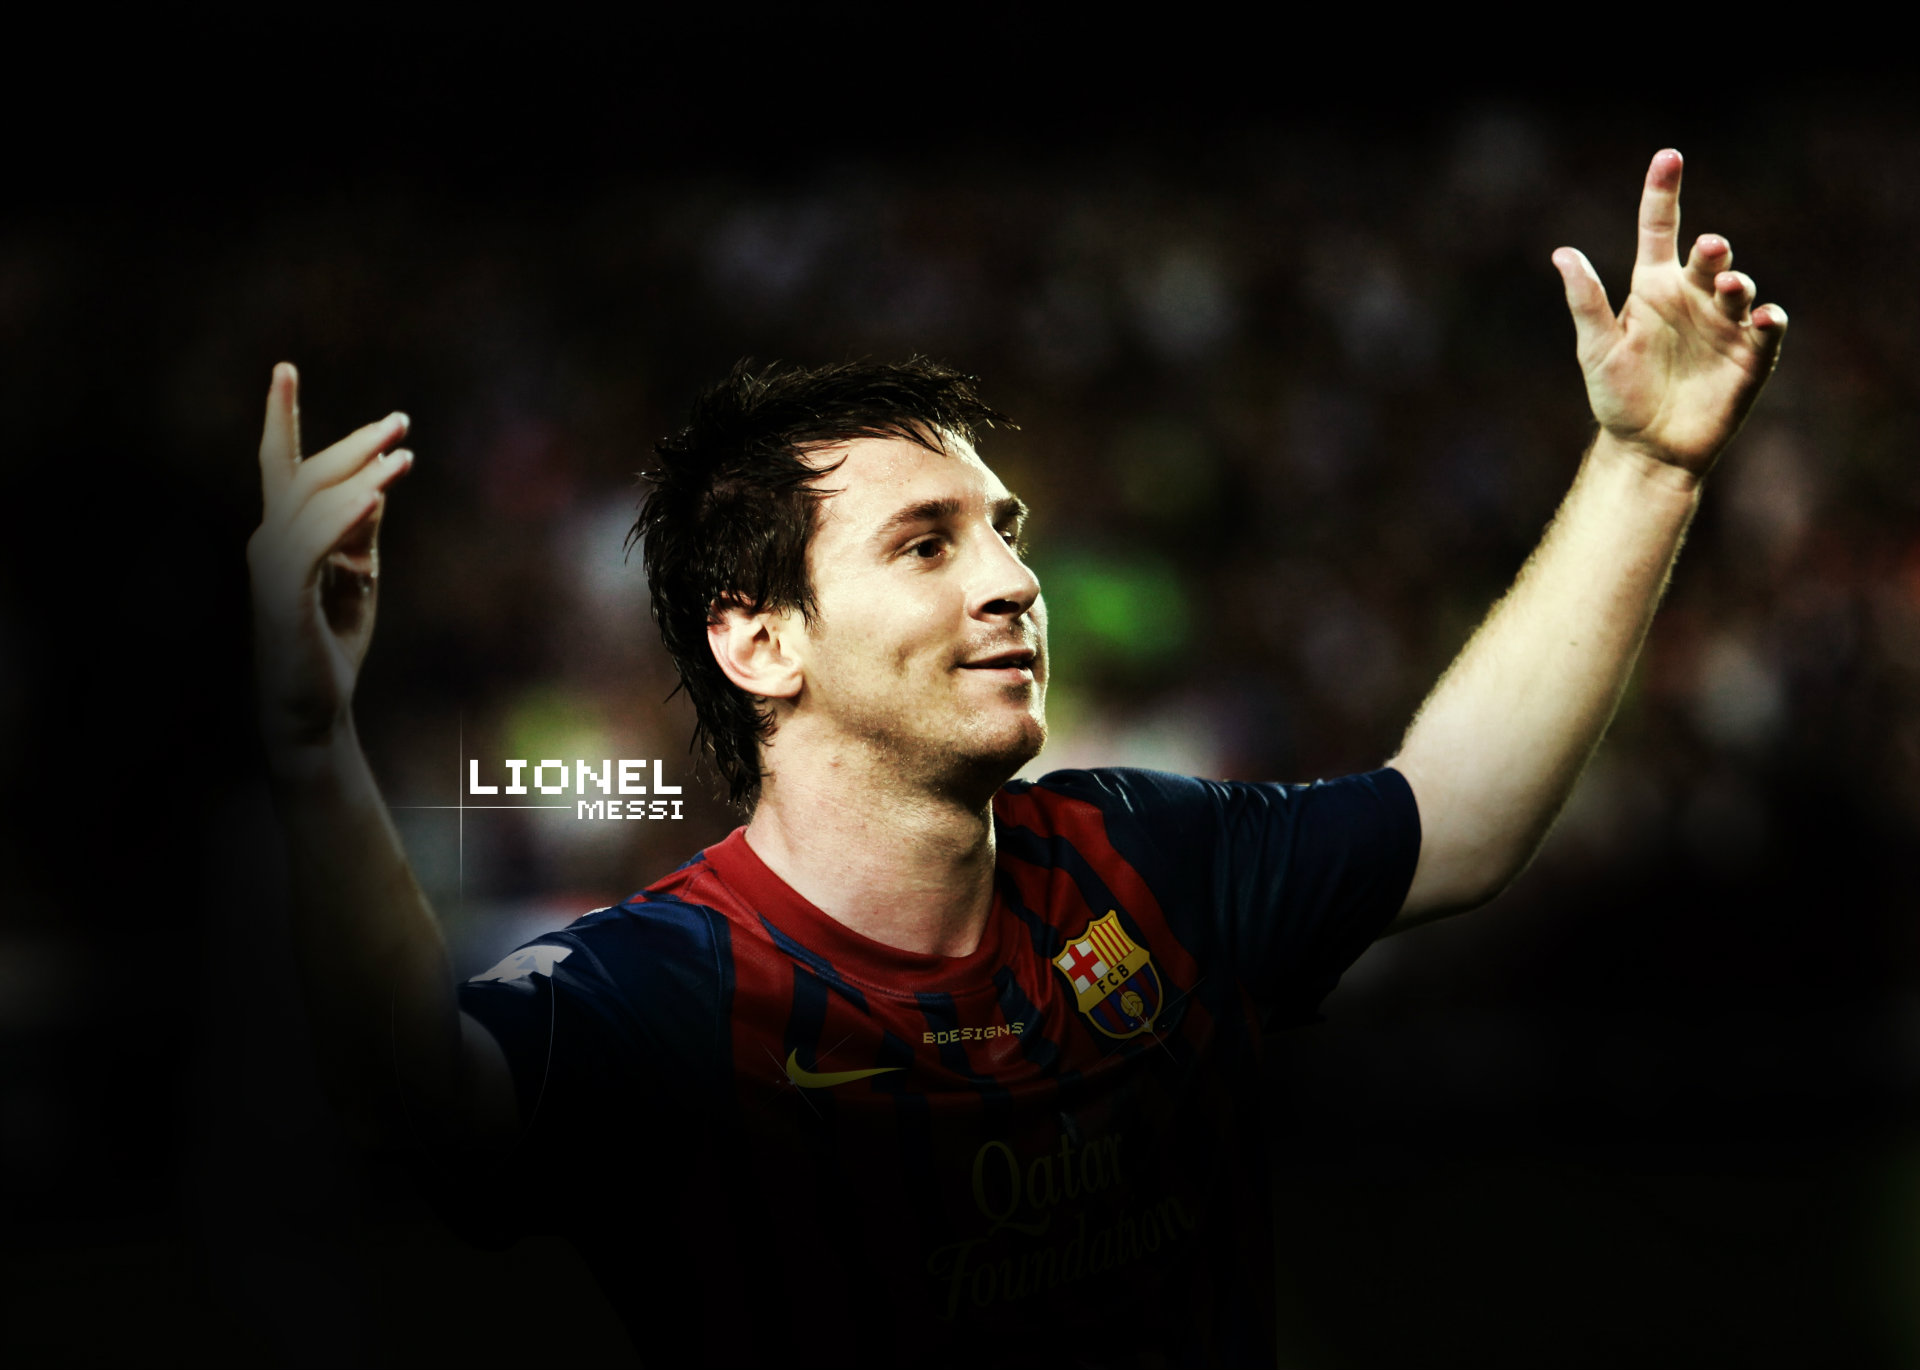 Download Lionel Messi 2016 Wallpaper | Most HD Wallpapers Pictures ...